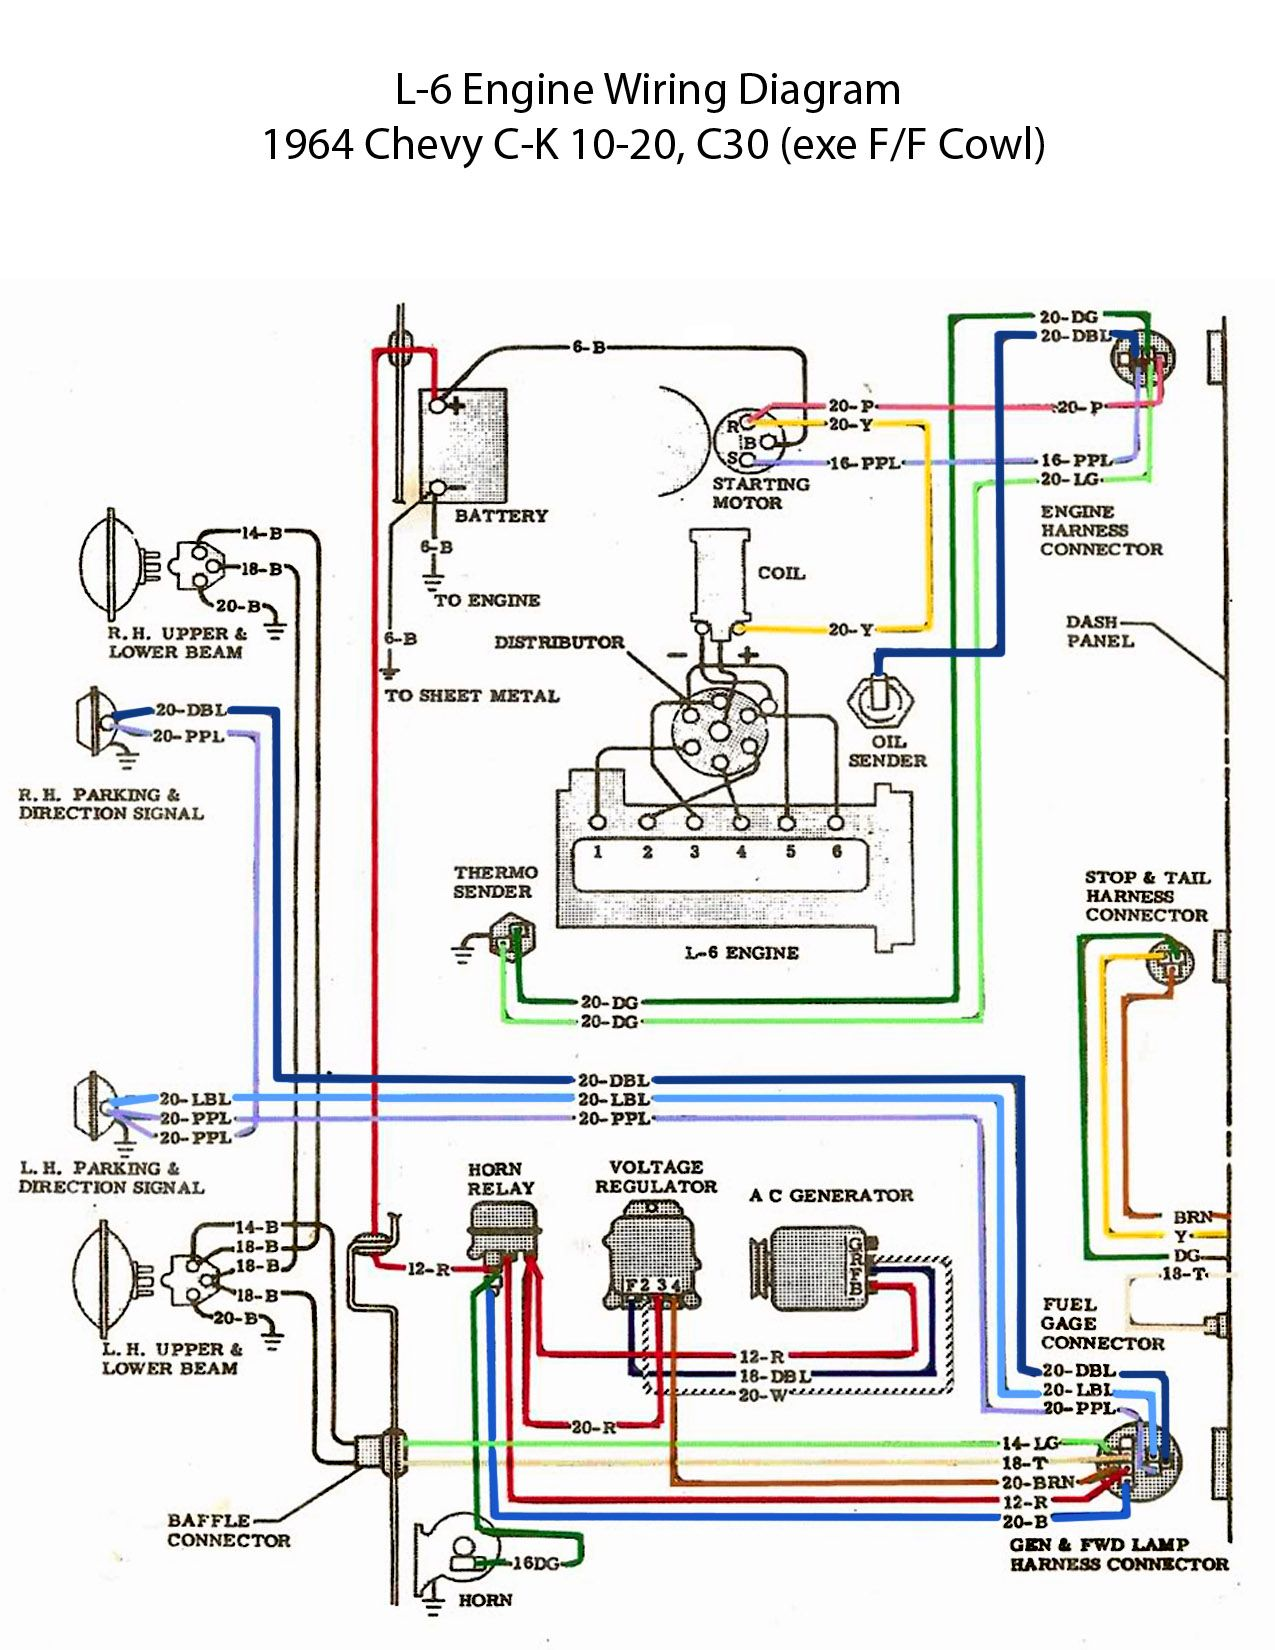 electric l 6 engine wiring diagram 60s chevy c10 wiring rh pinterest com Chevy 3600 Chevy 3800